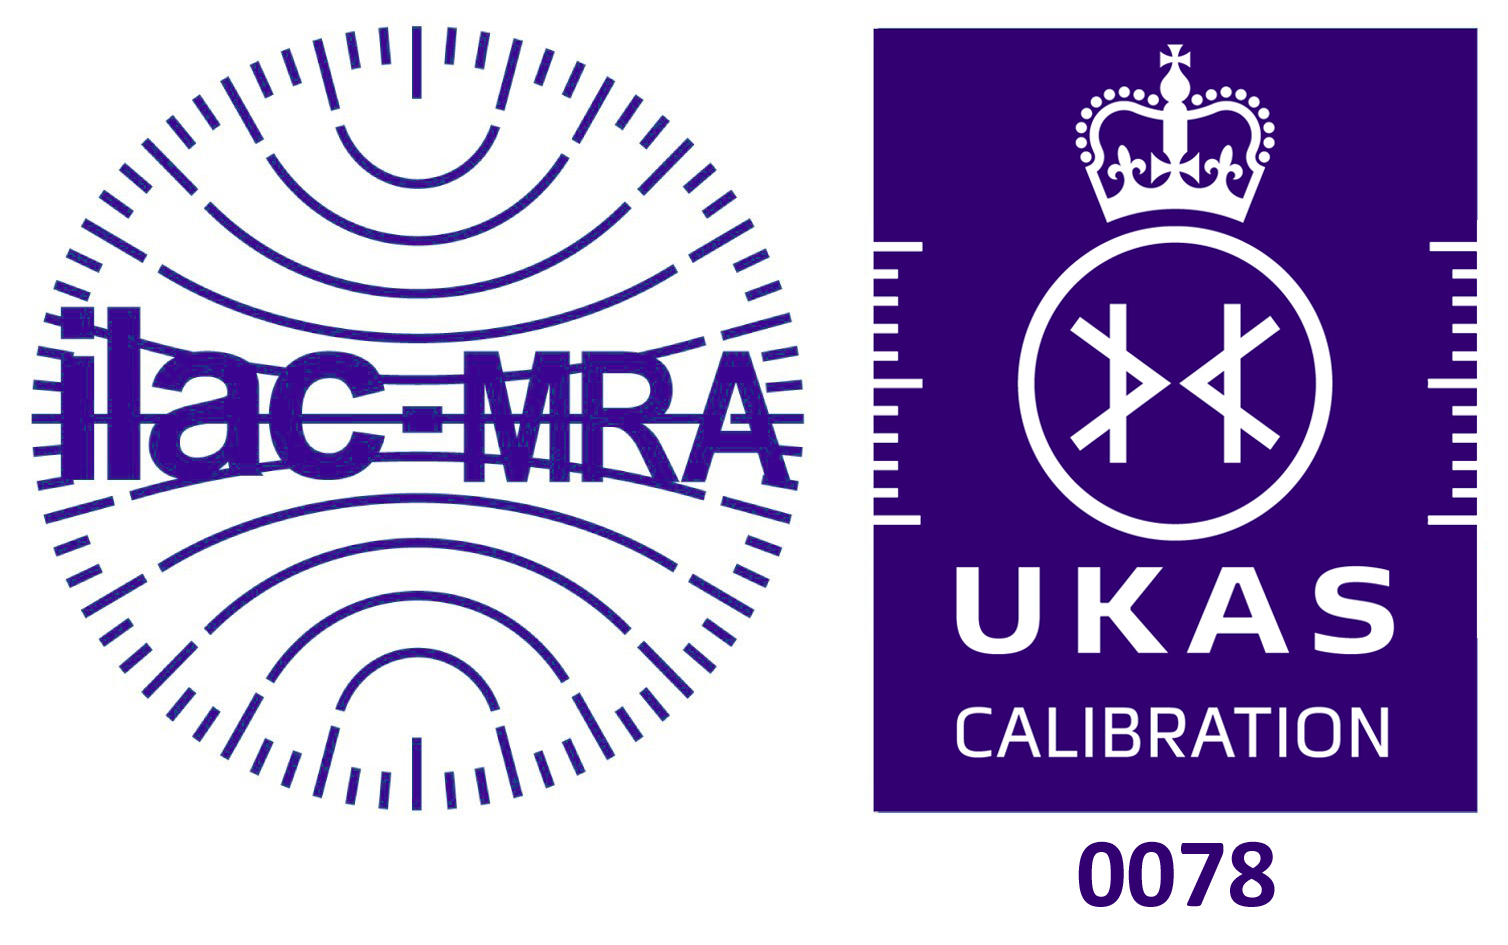 ILAC-MRA UKAS Accreditiation Mark